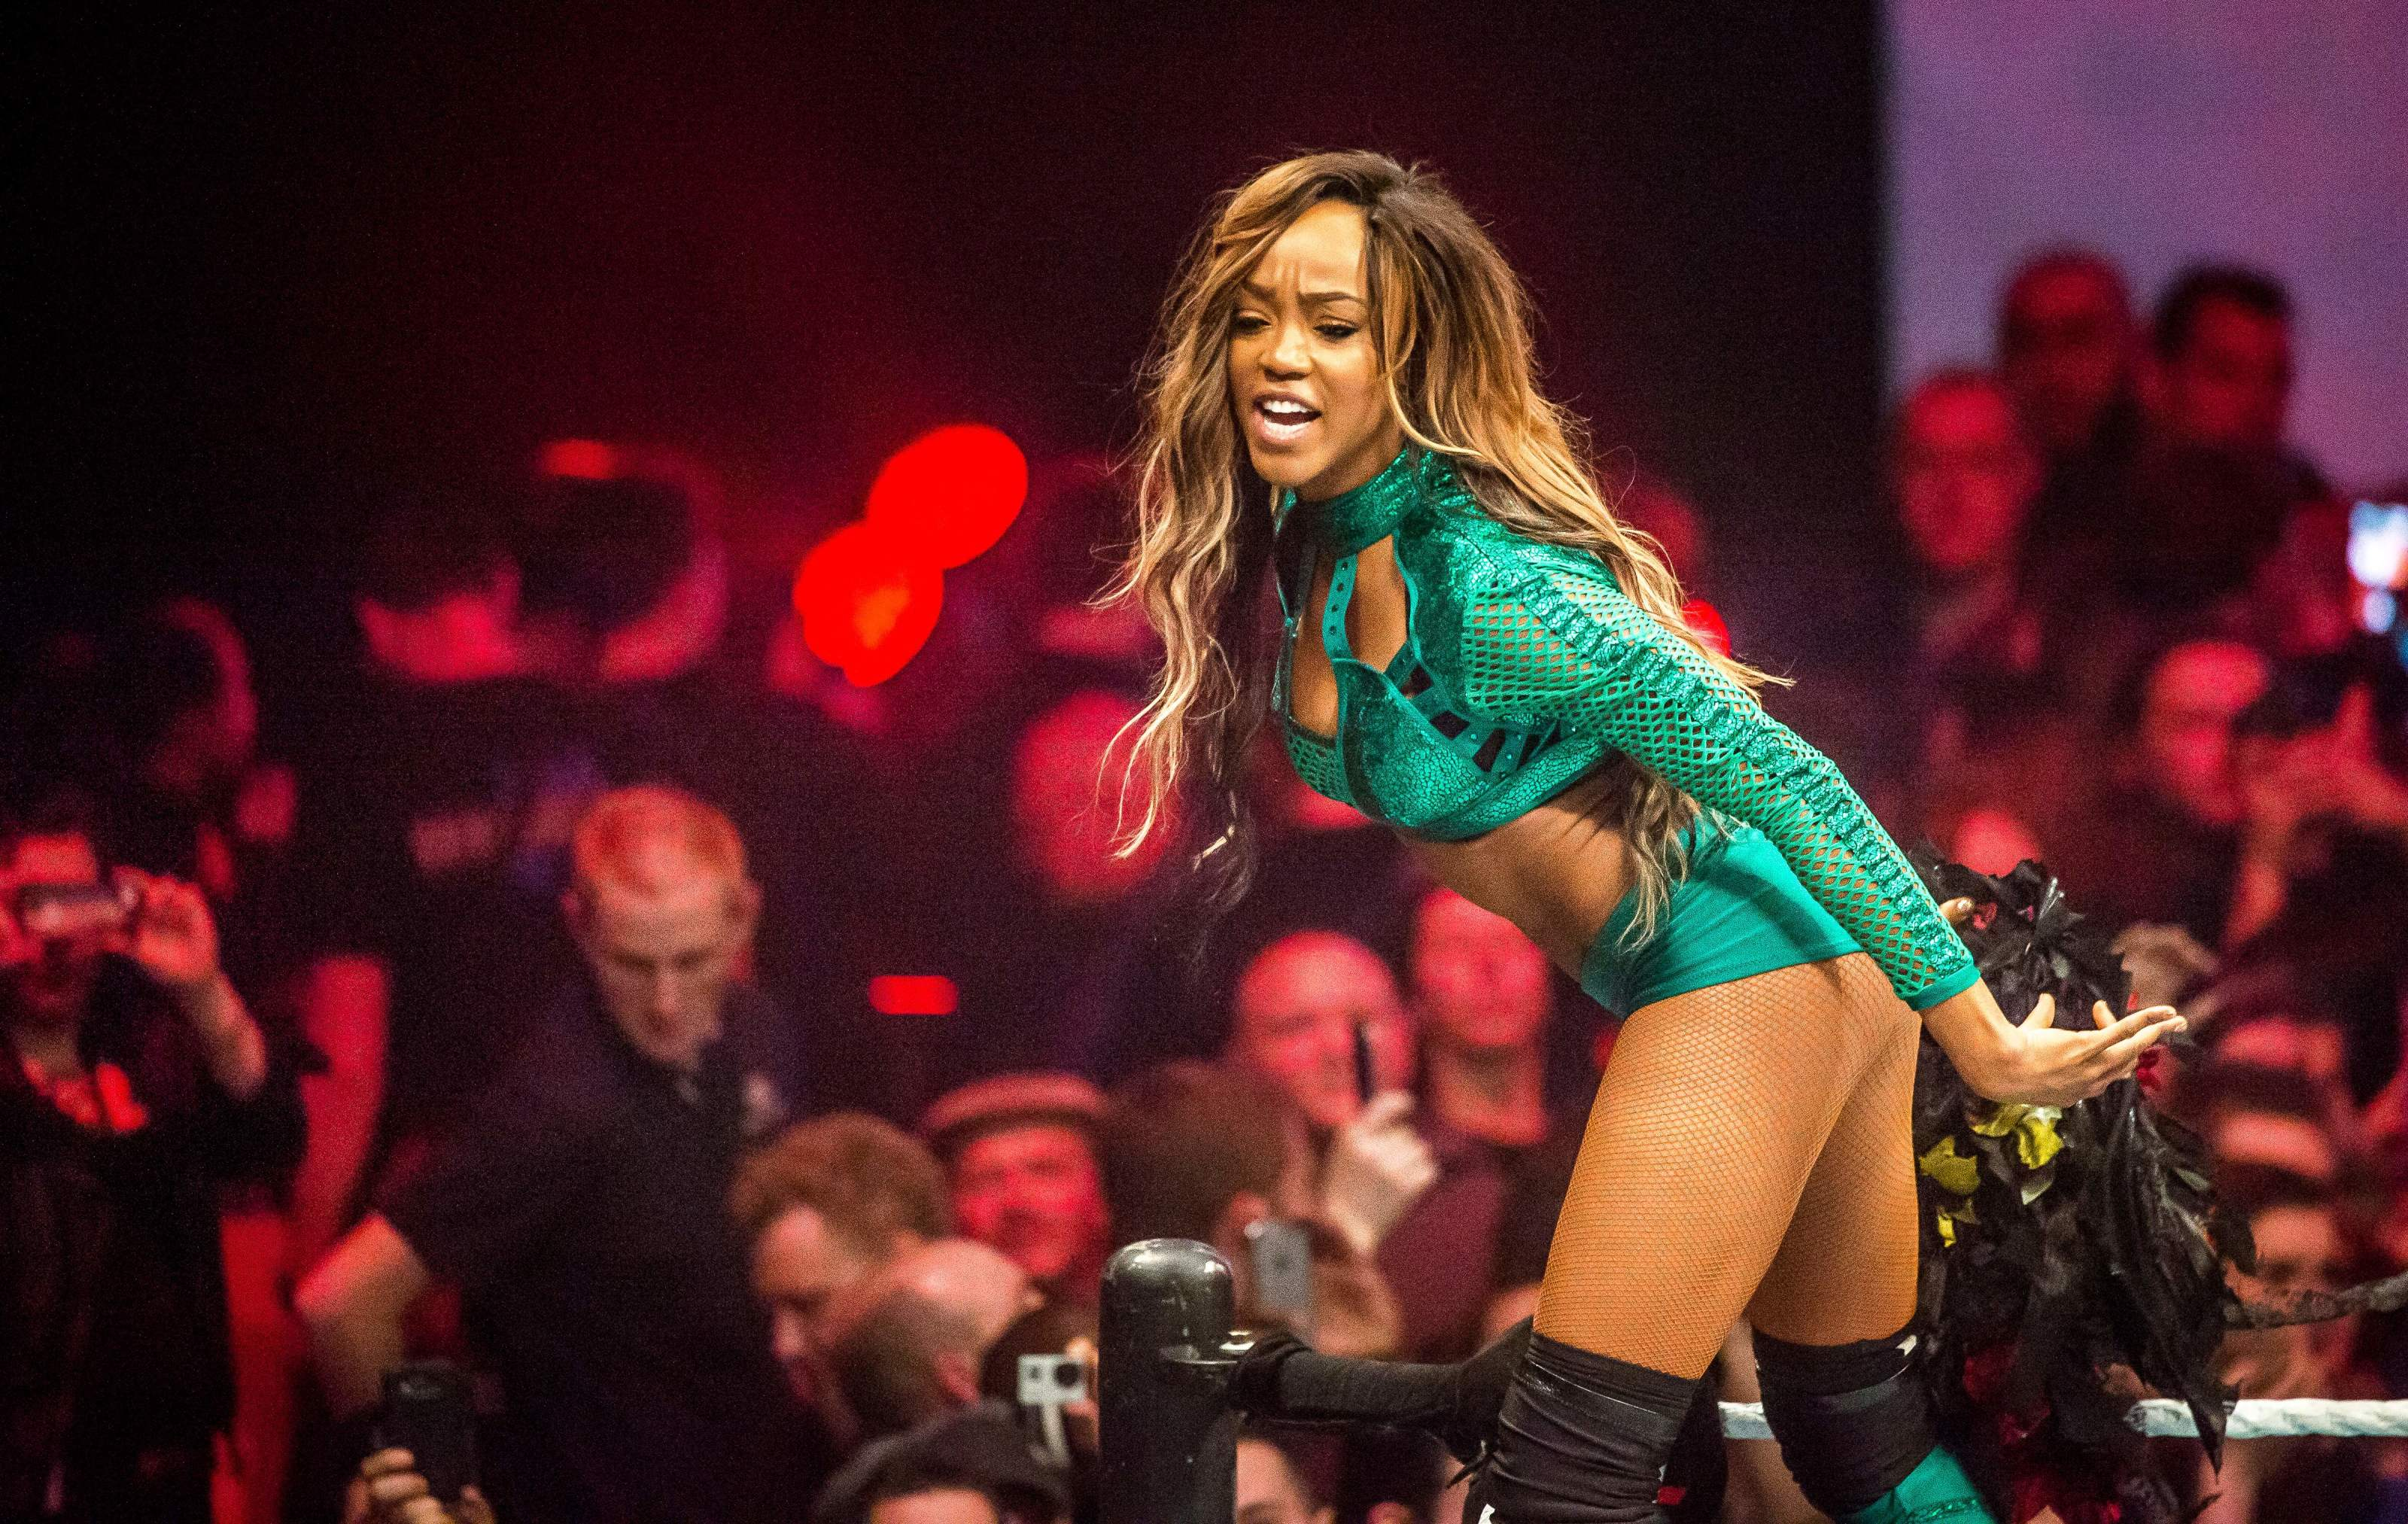 WWE: Alicia Fox has a lasting legacy in the Women's Revolution